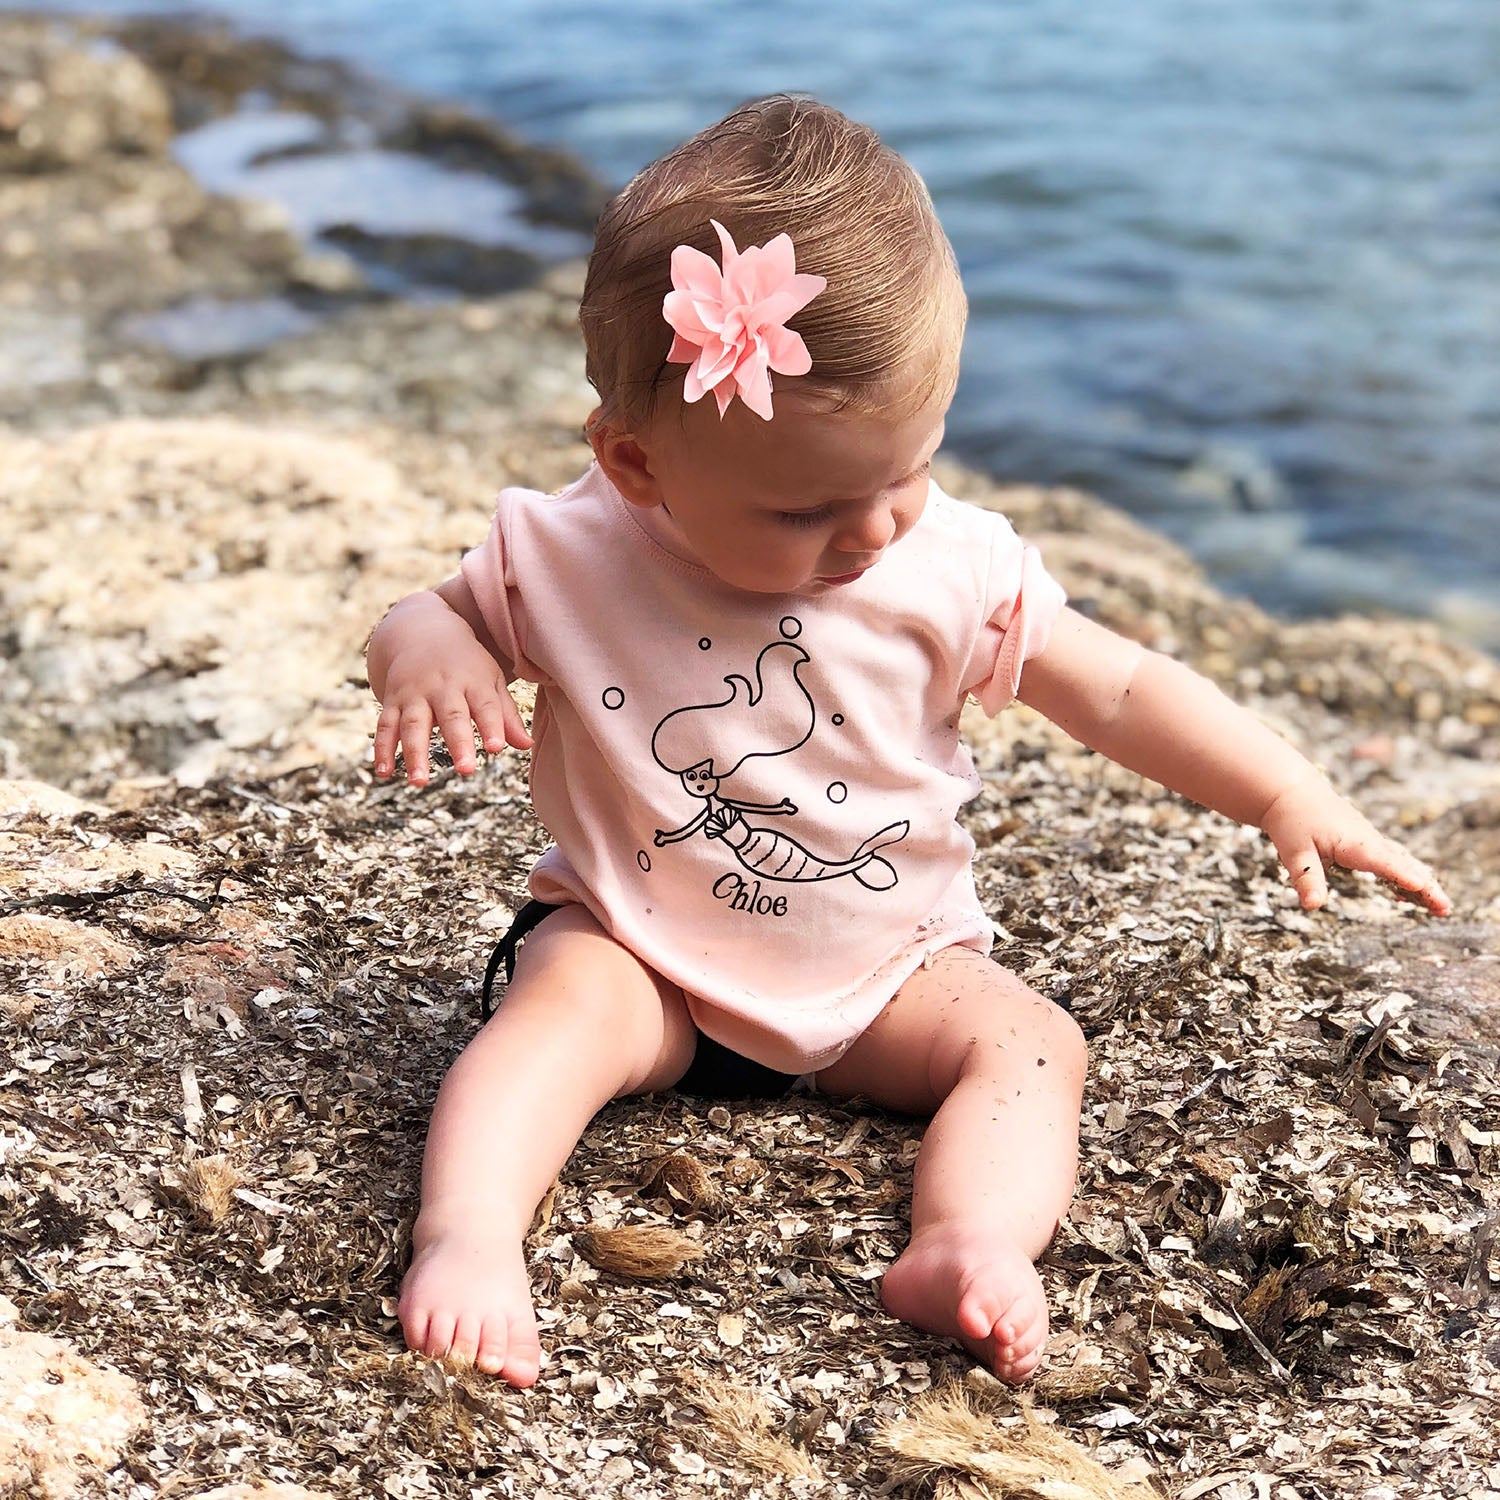 Mermaid baby shortsleeve shirt